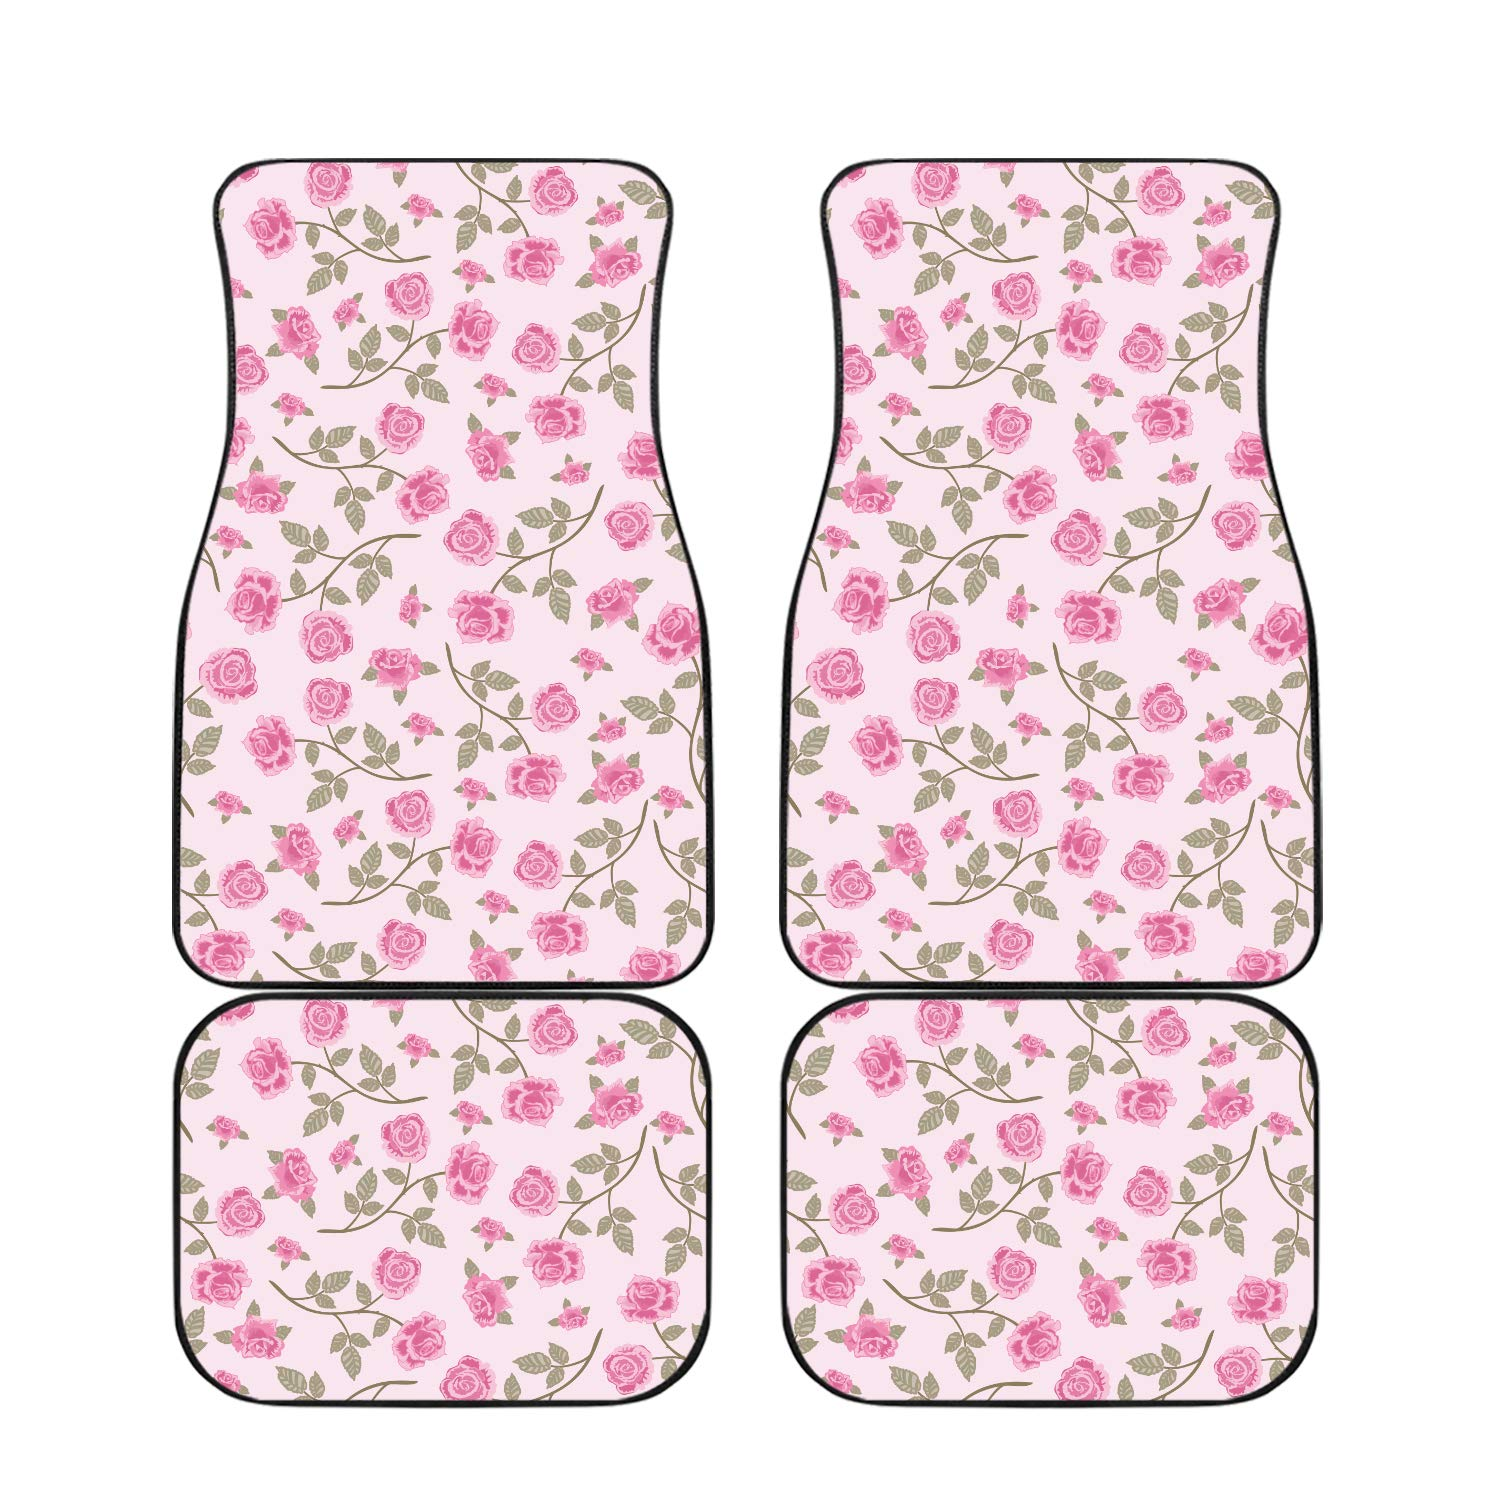 HotCarCovers Car Mats for Women 4-Piece Set for Shabby Chic Pink Roses Universal Fit Front and Back Car Mat